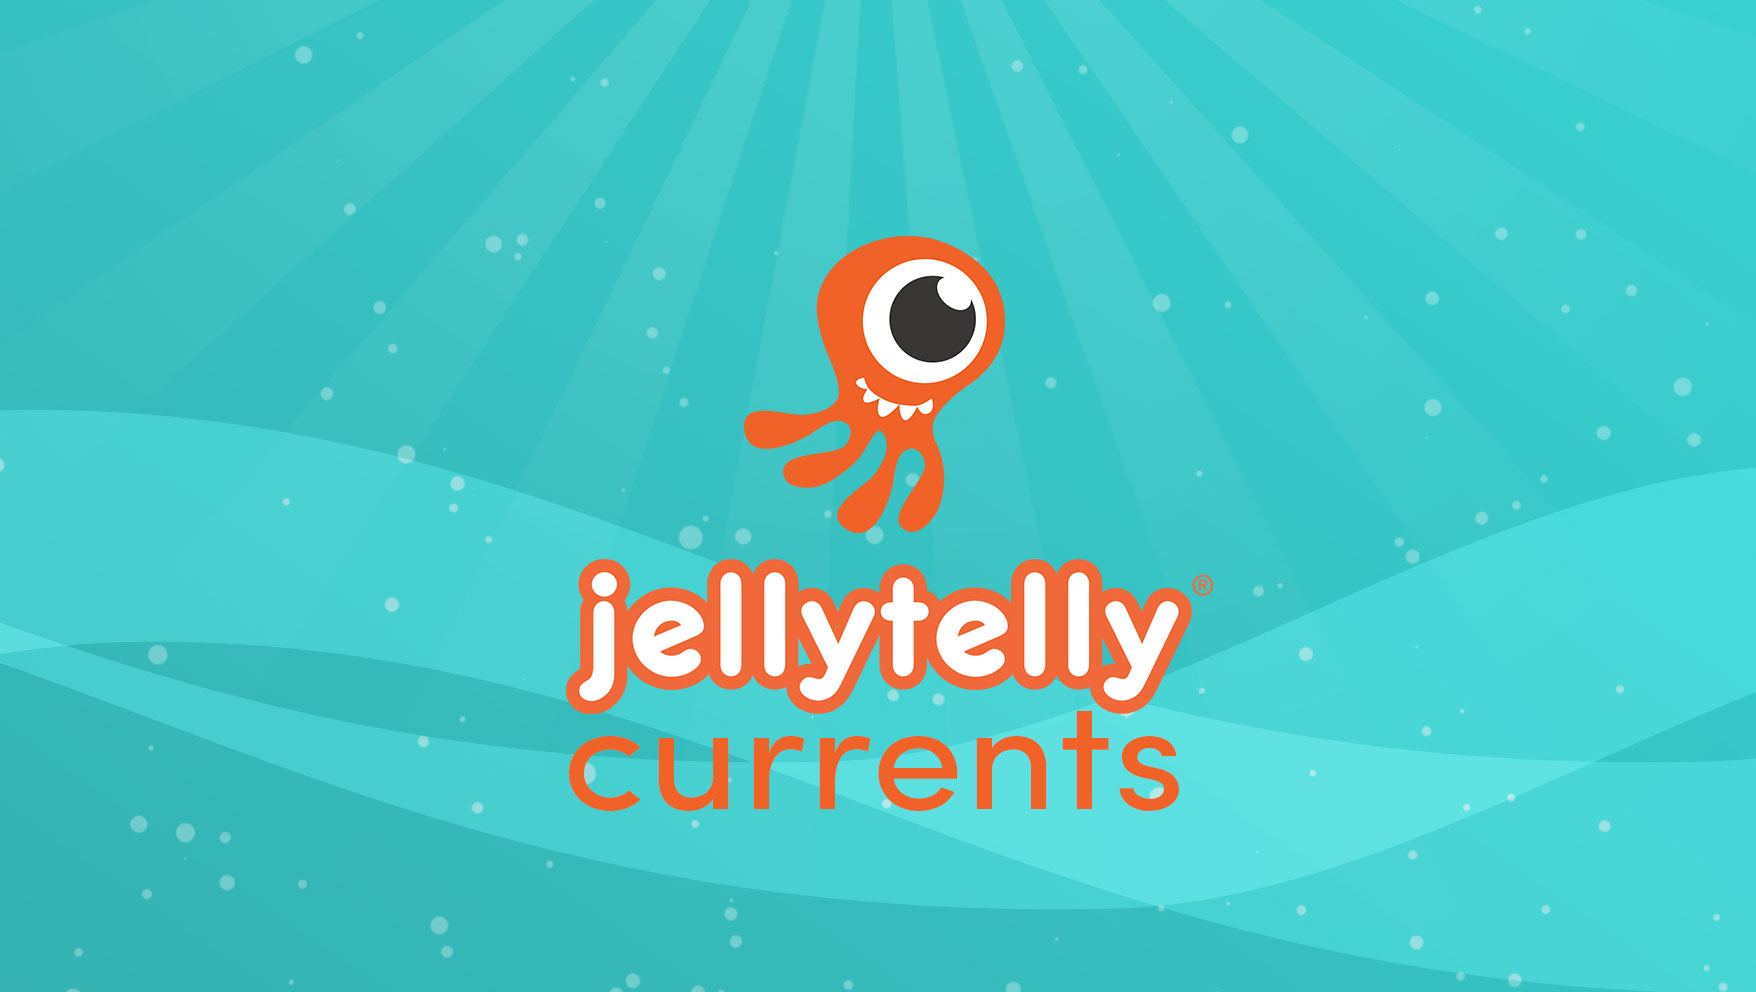 JellyTelly Currents 1/6/17 - A New Years' Round Up